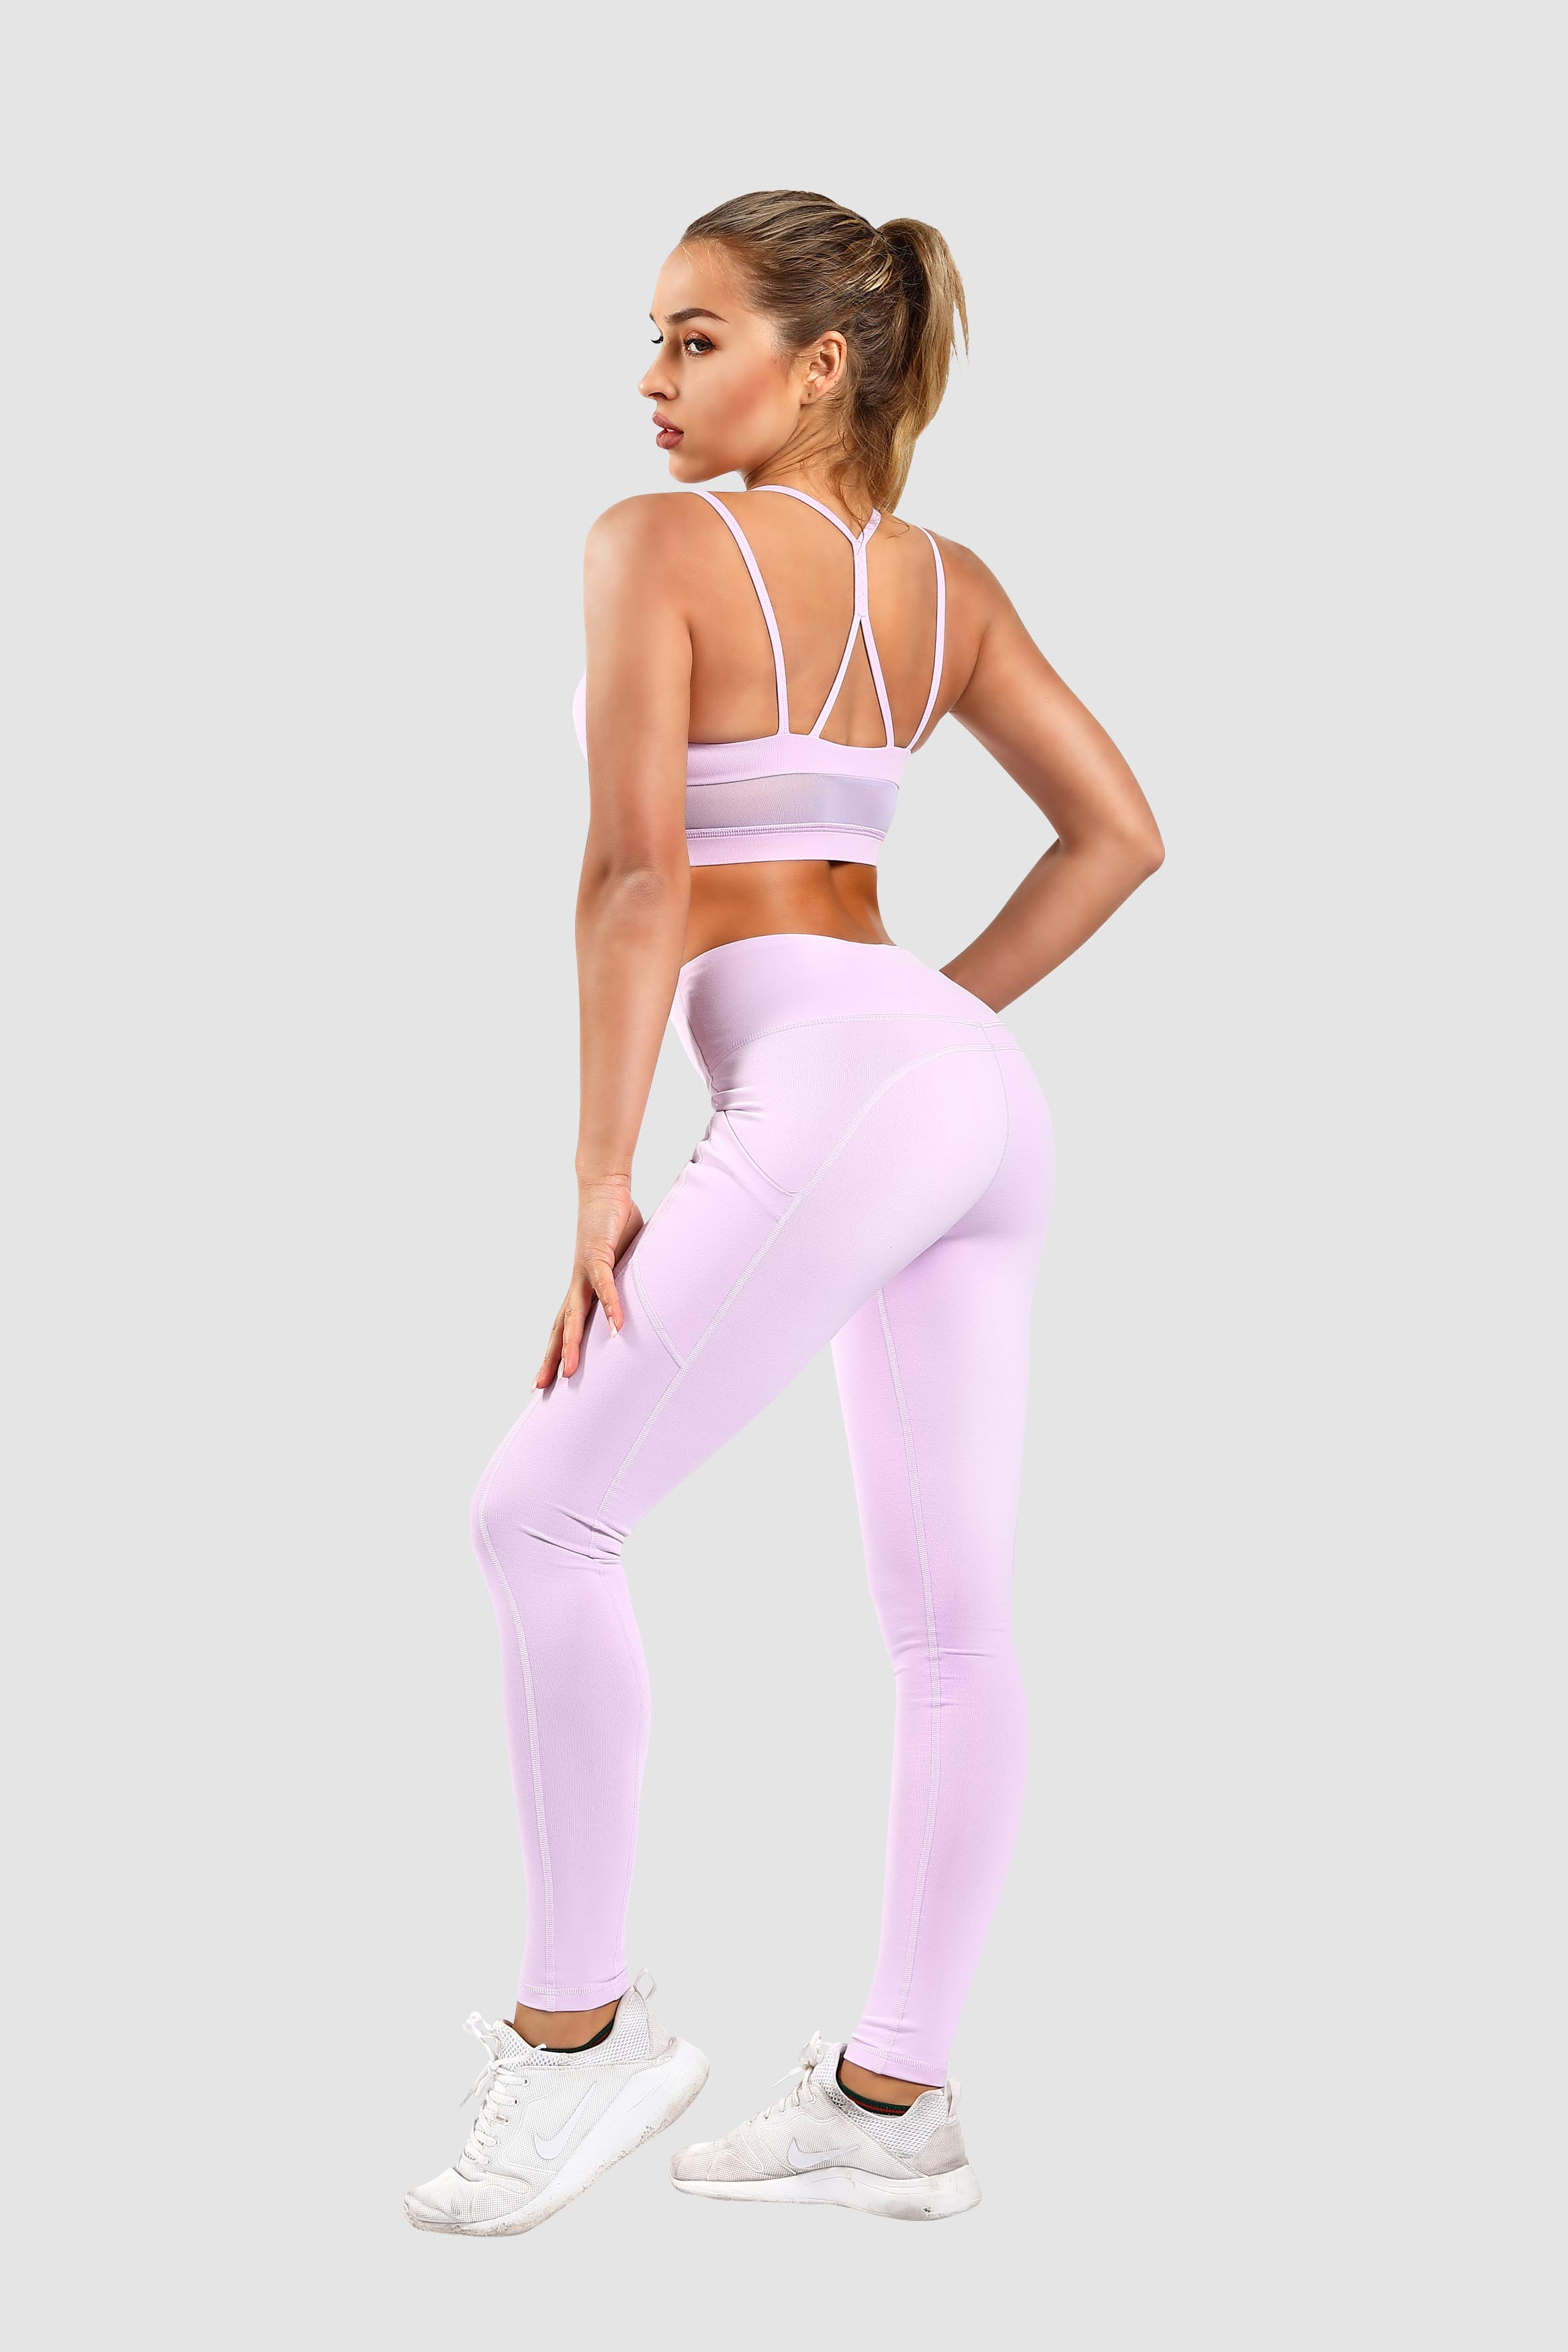 2019 Women Sexy High Waits Yoga Bra Top and Pants Leggings 2sets Wholesale Workout Gym Fitness Sport